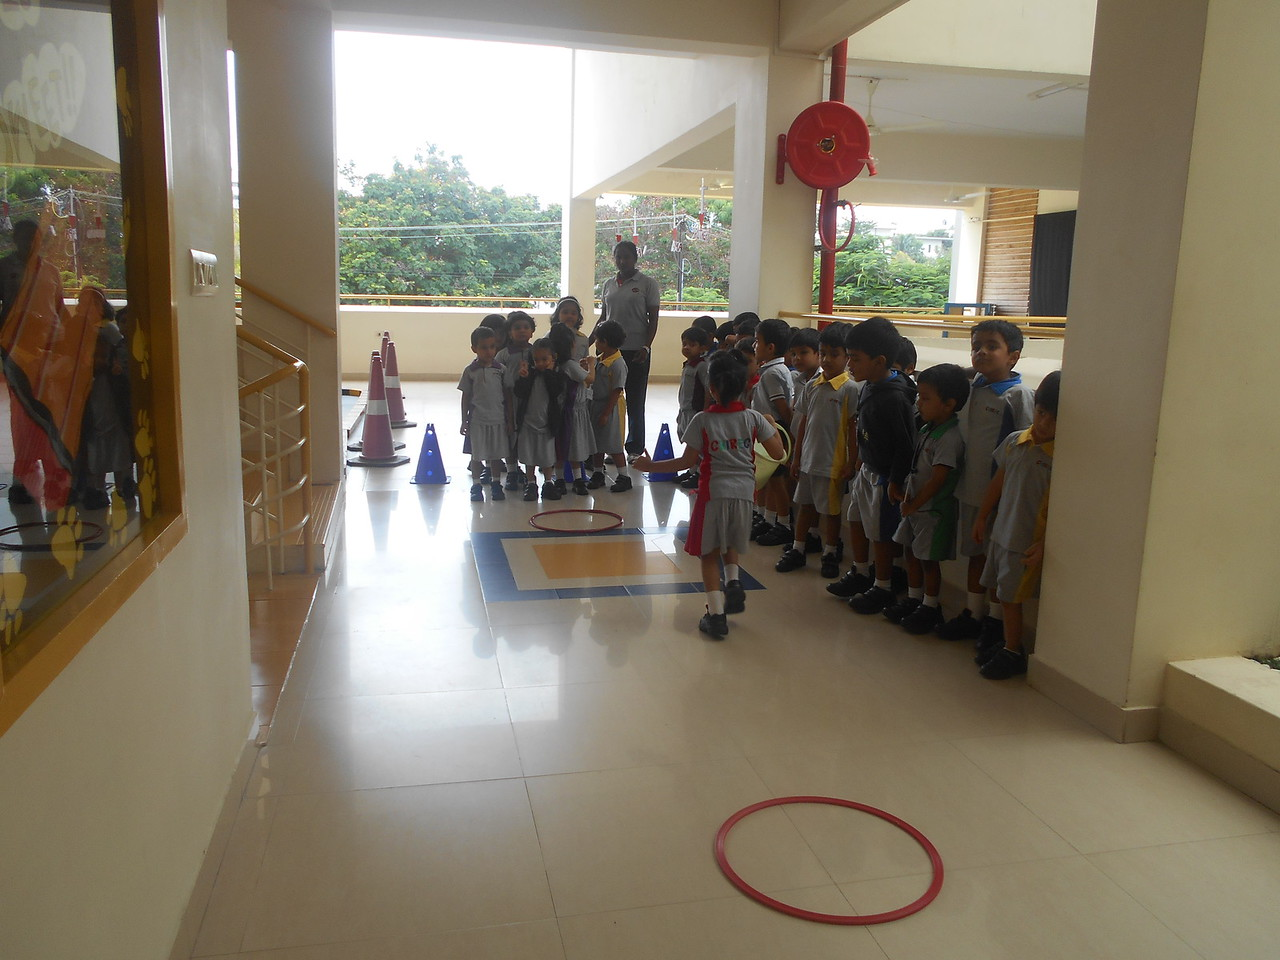 Following rules to play Game in P E T class